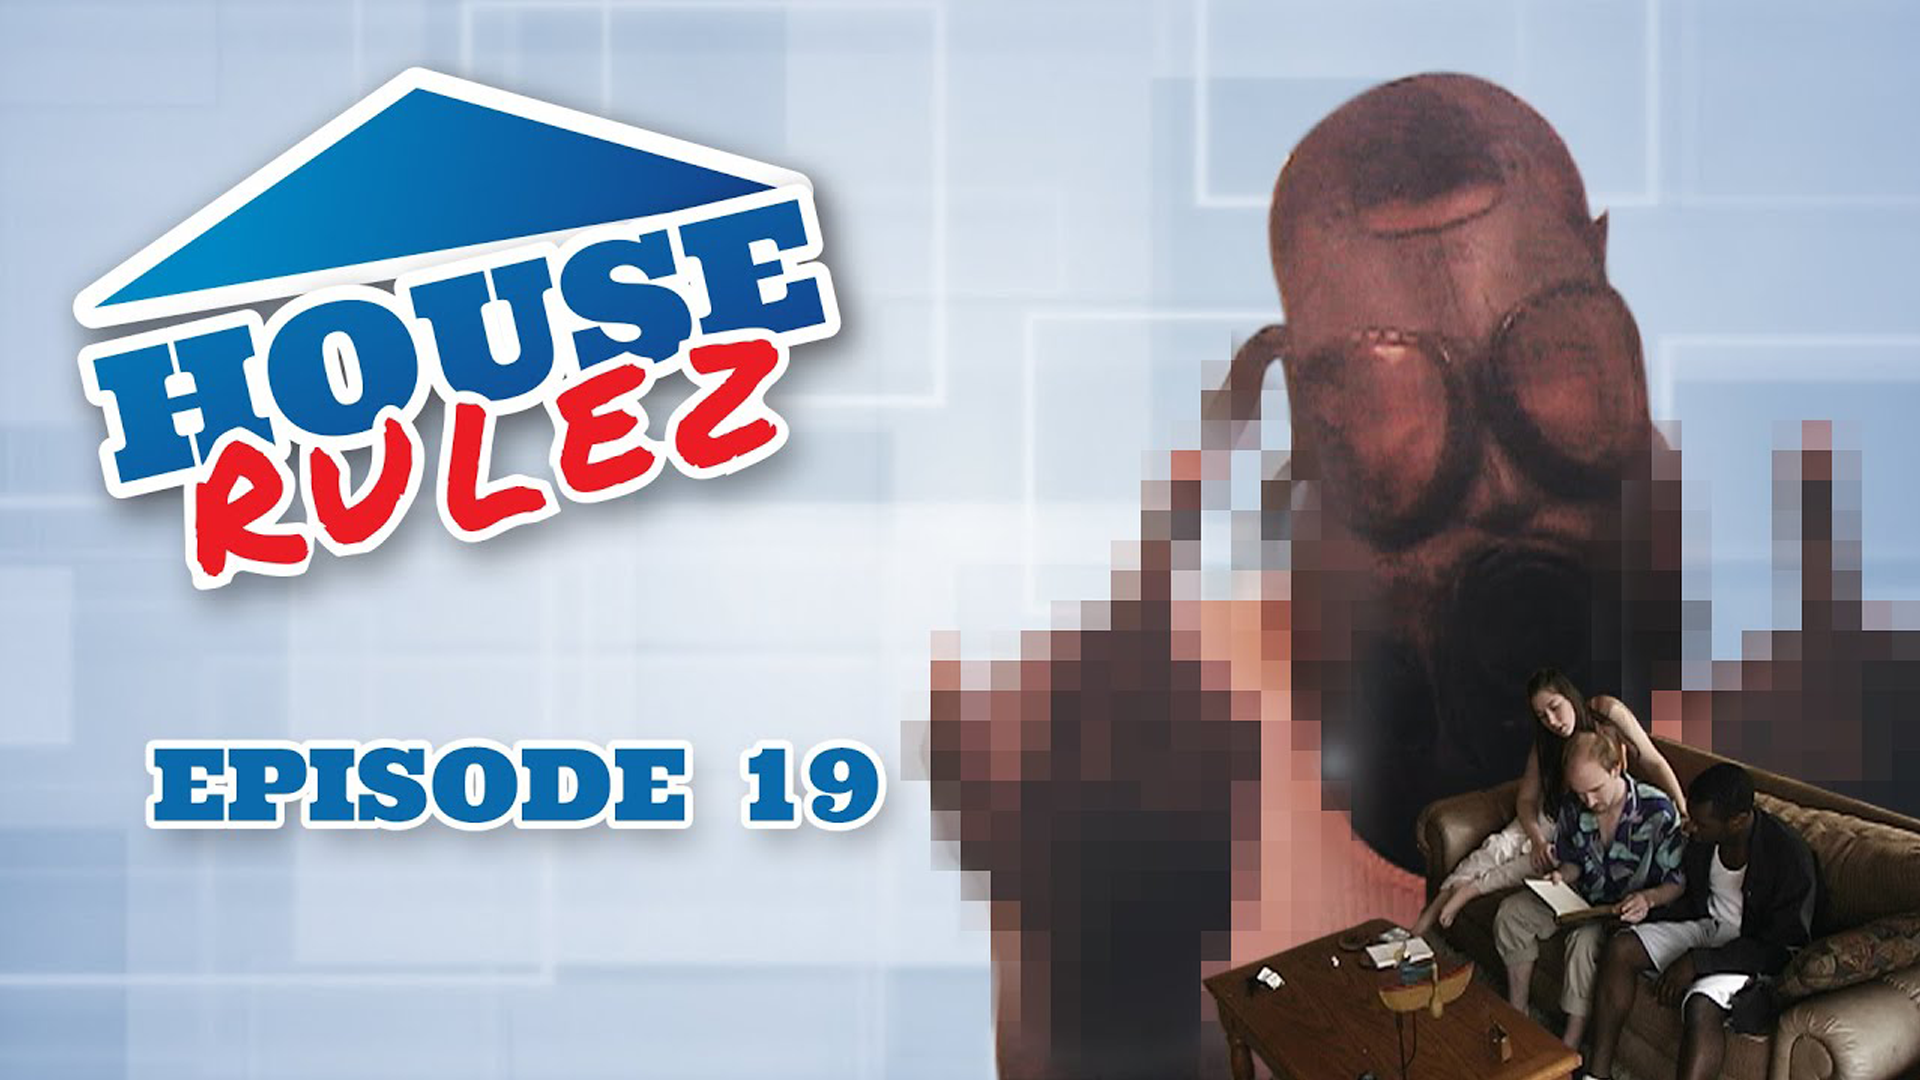 House Rulez Episode 19